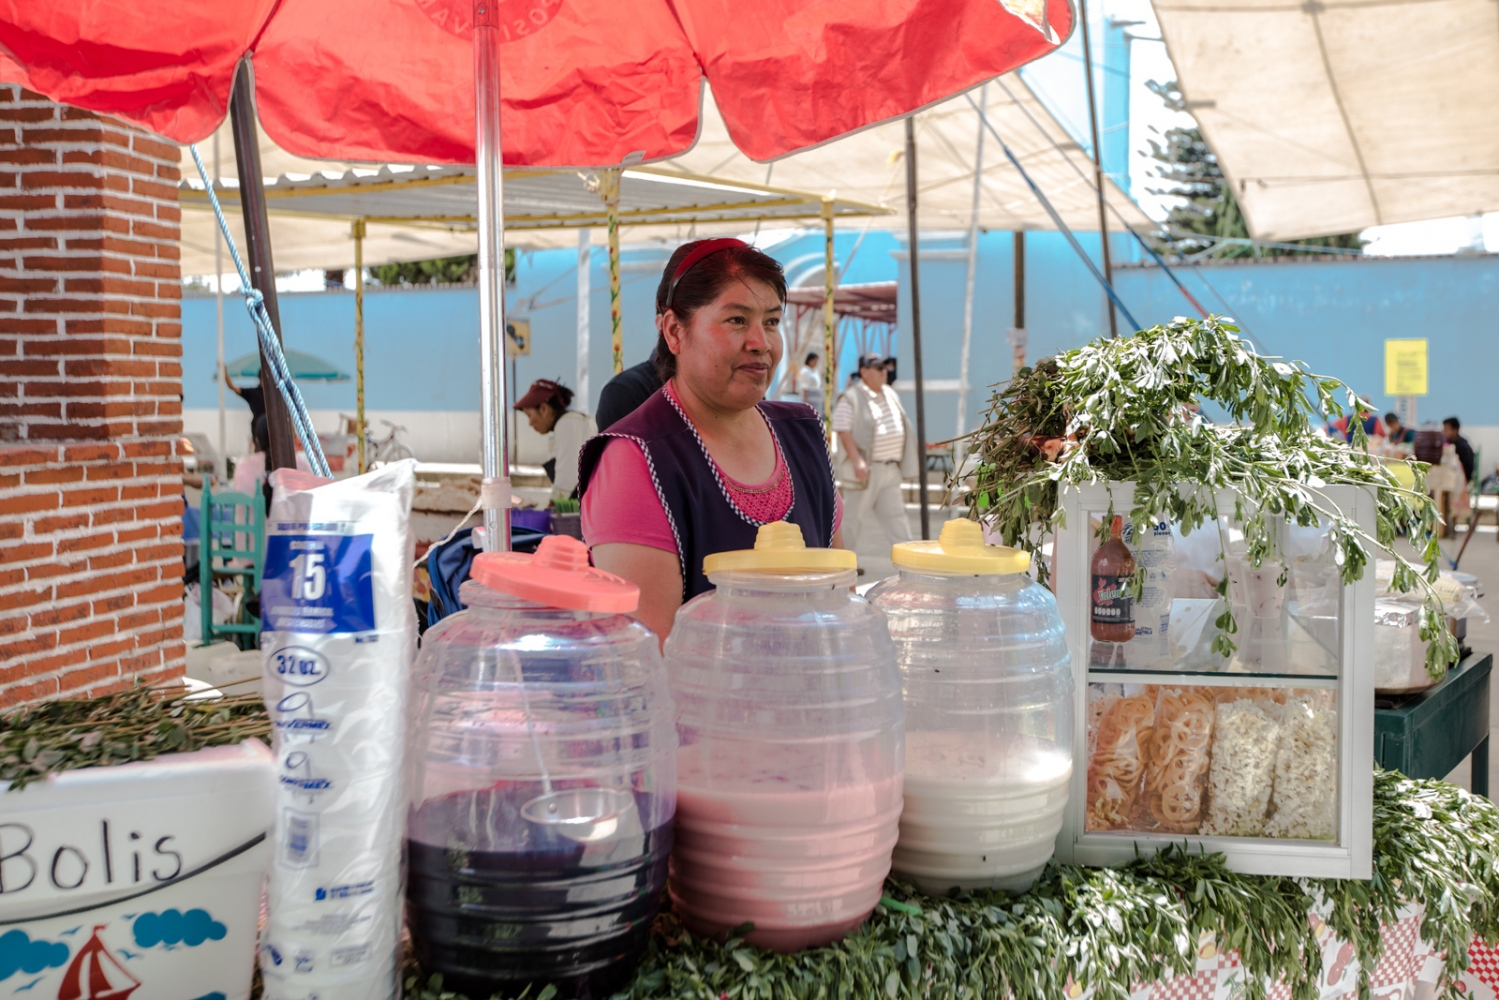 May, 2017. Los Reyes Tlanechicolpan Fresh water made from fruits was sold.